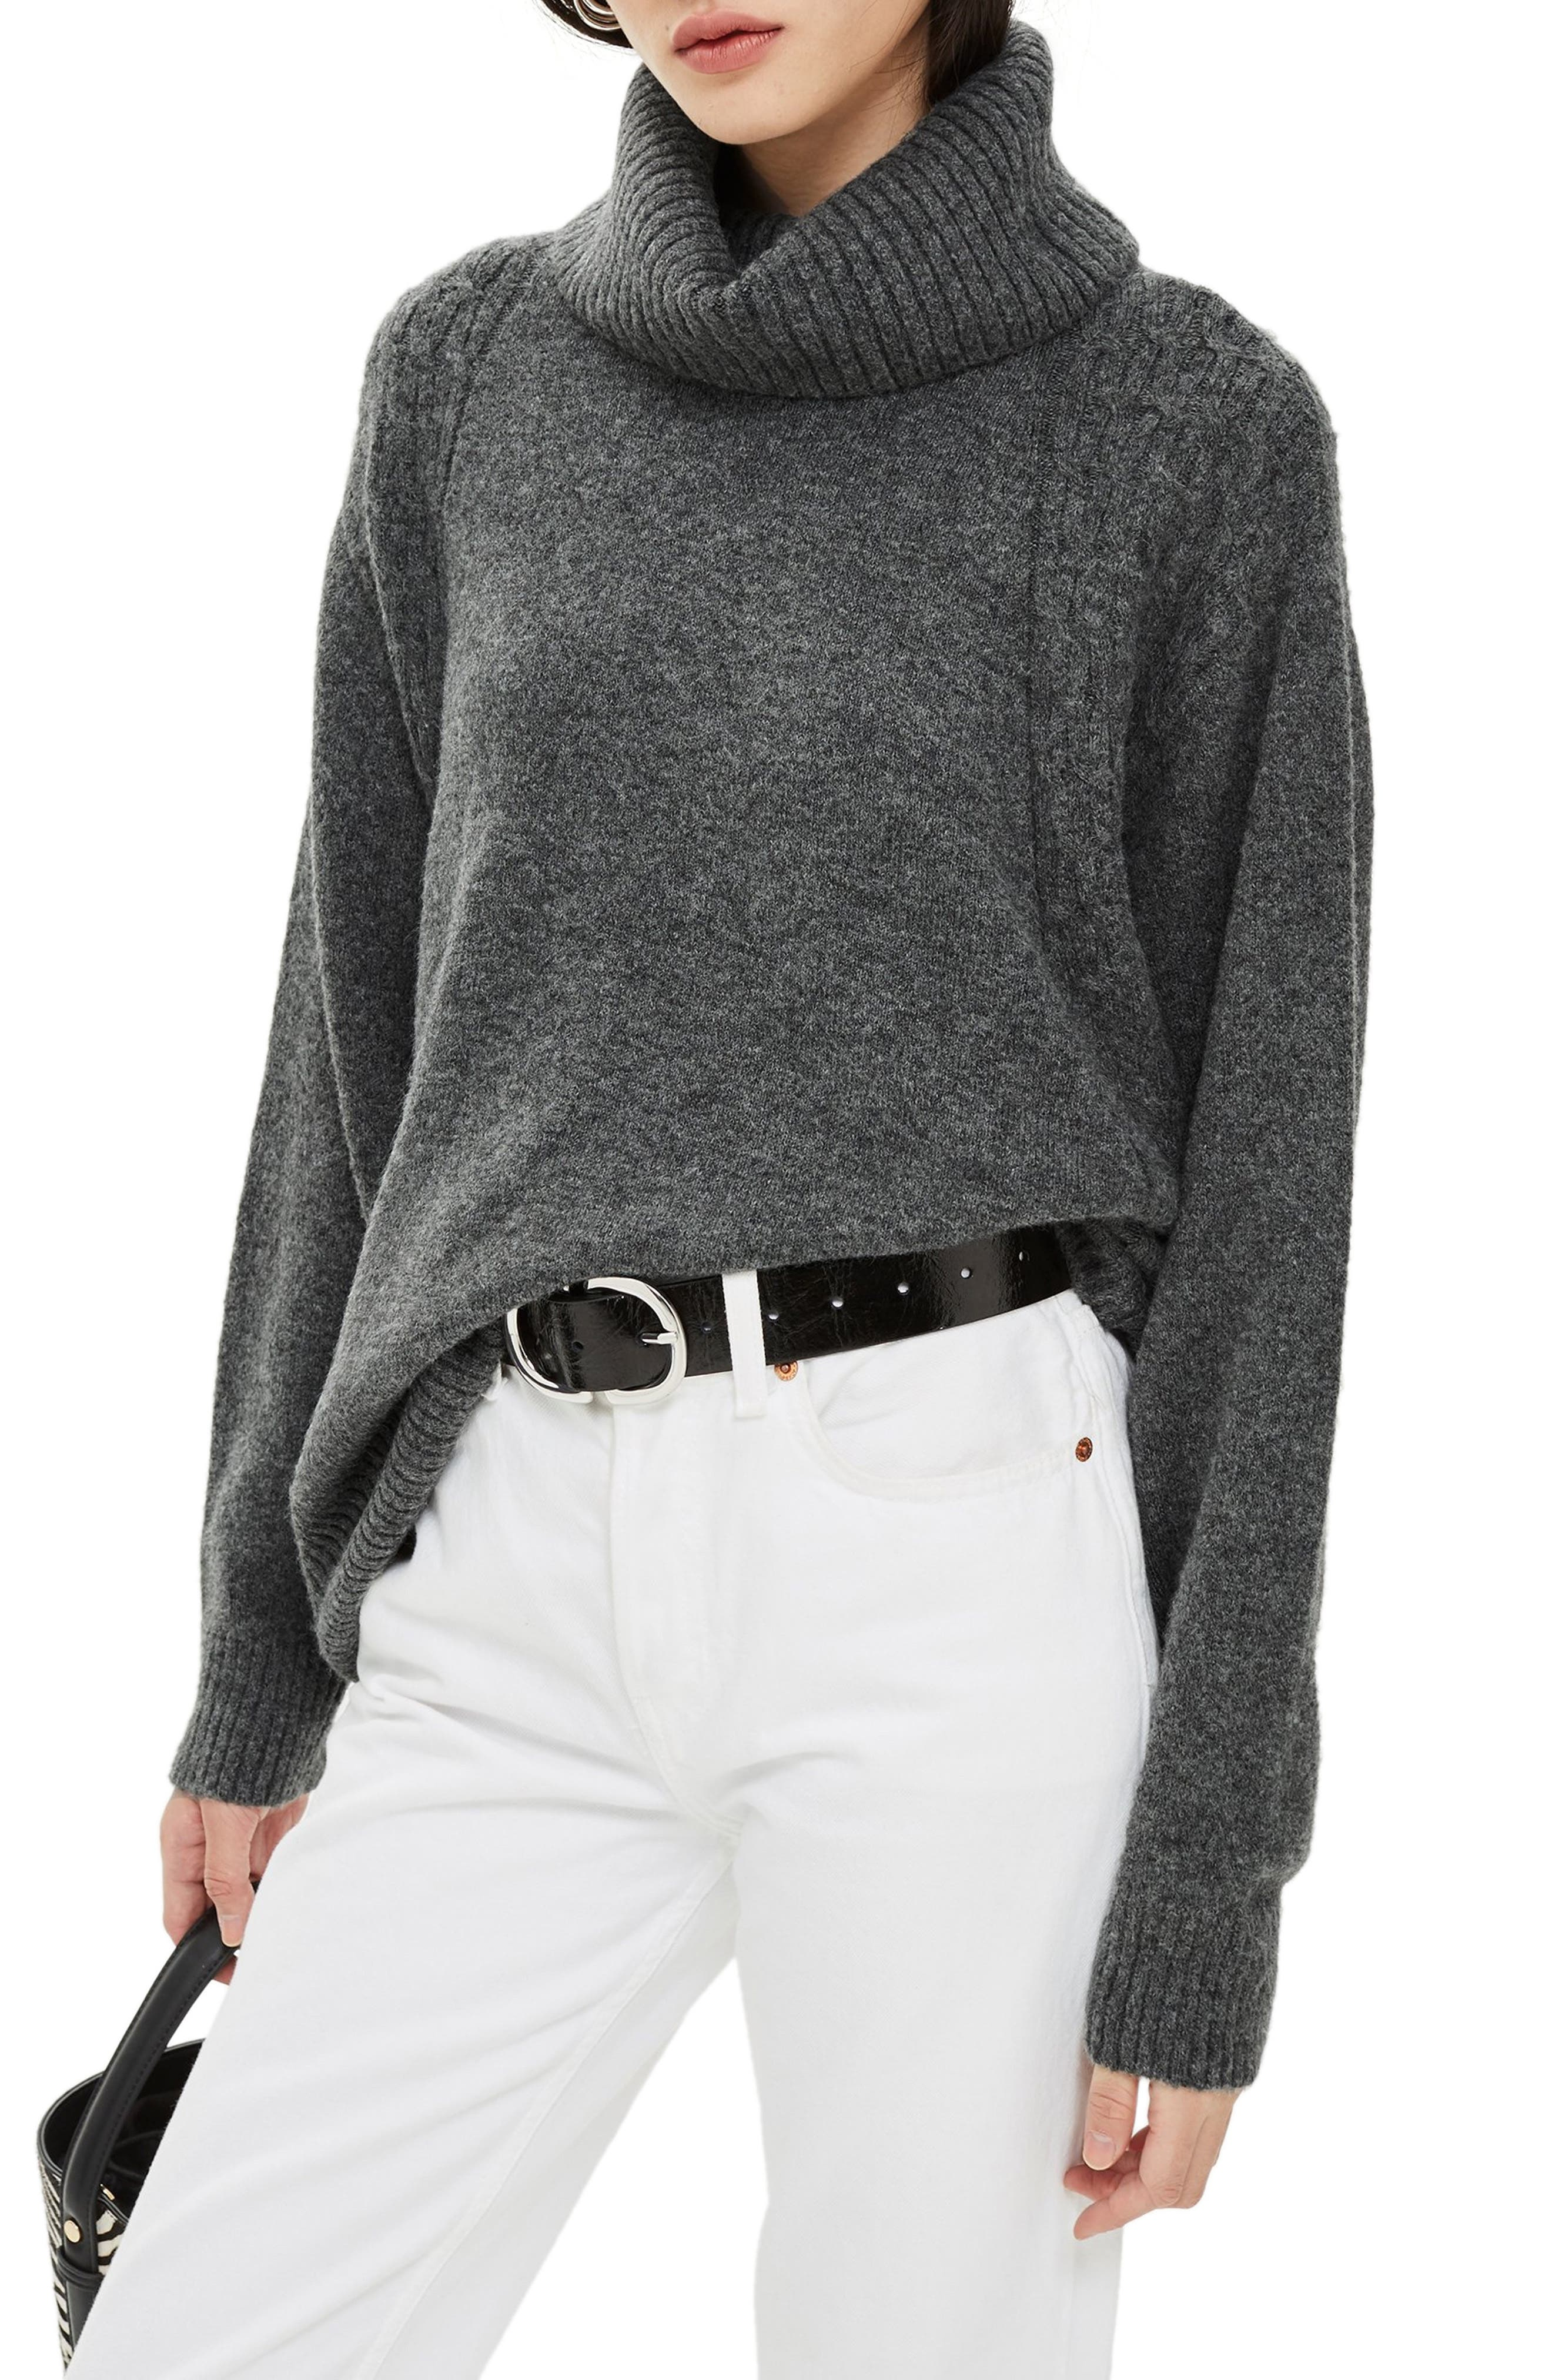 TOPSHOP,                             Turtleneck Sweater,                             Main thumbnail 1, color,                             CHARCOAL